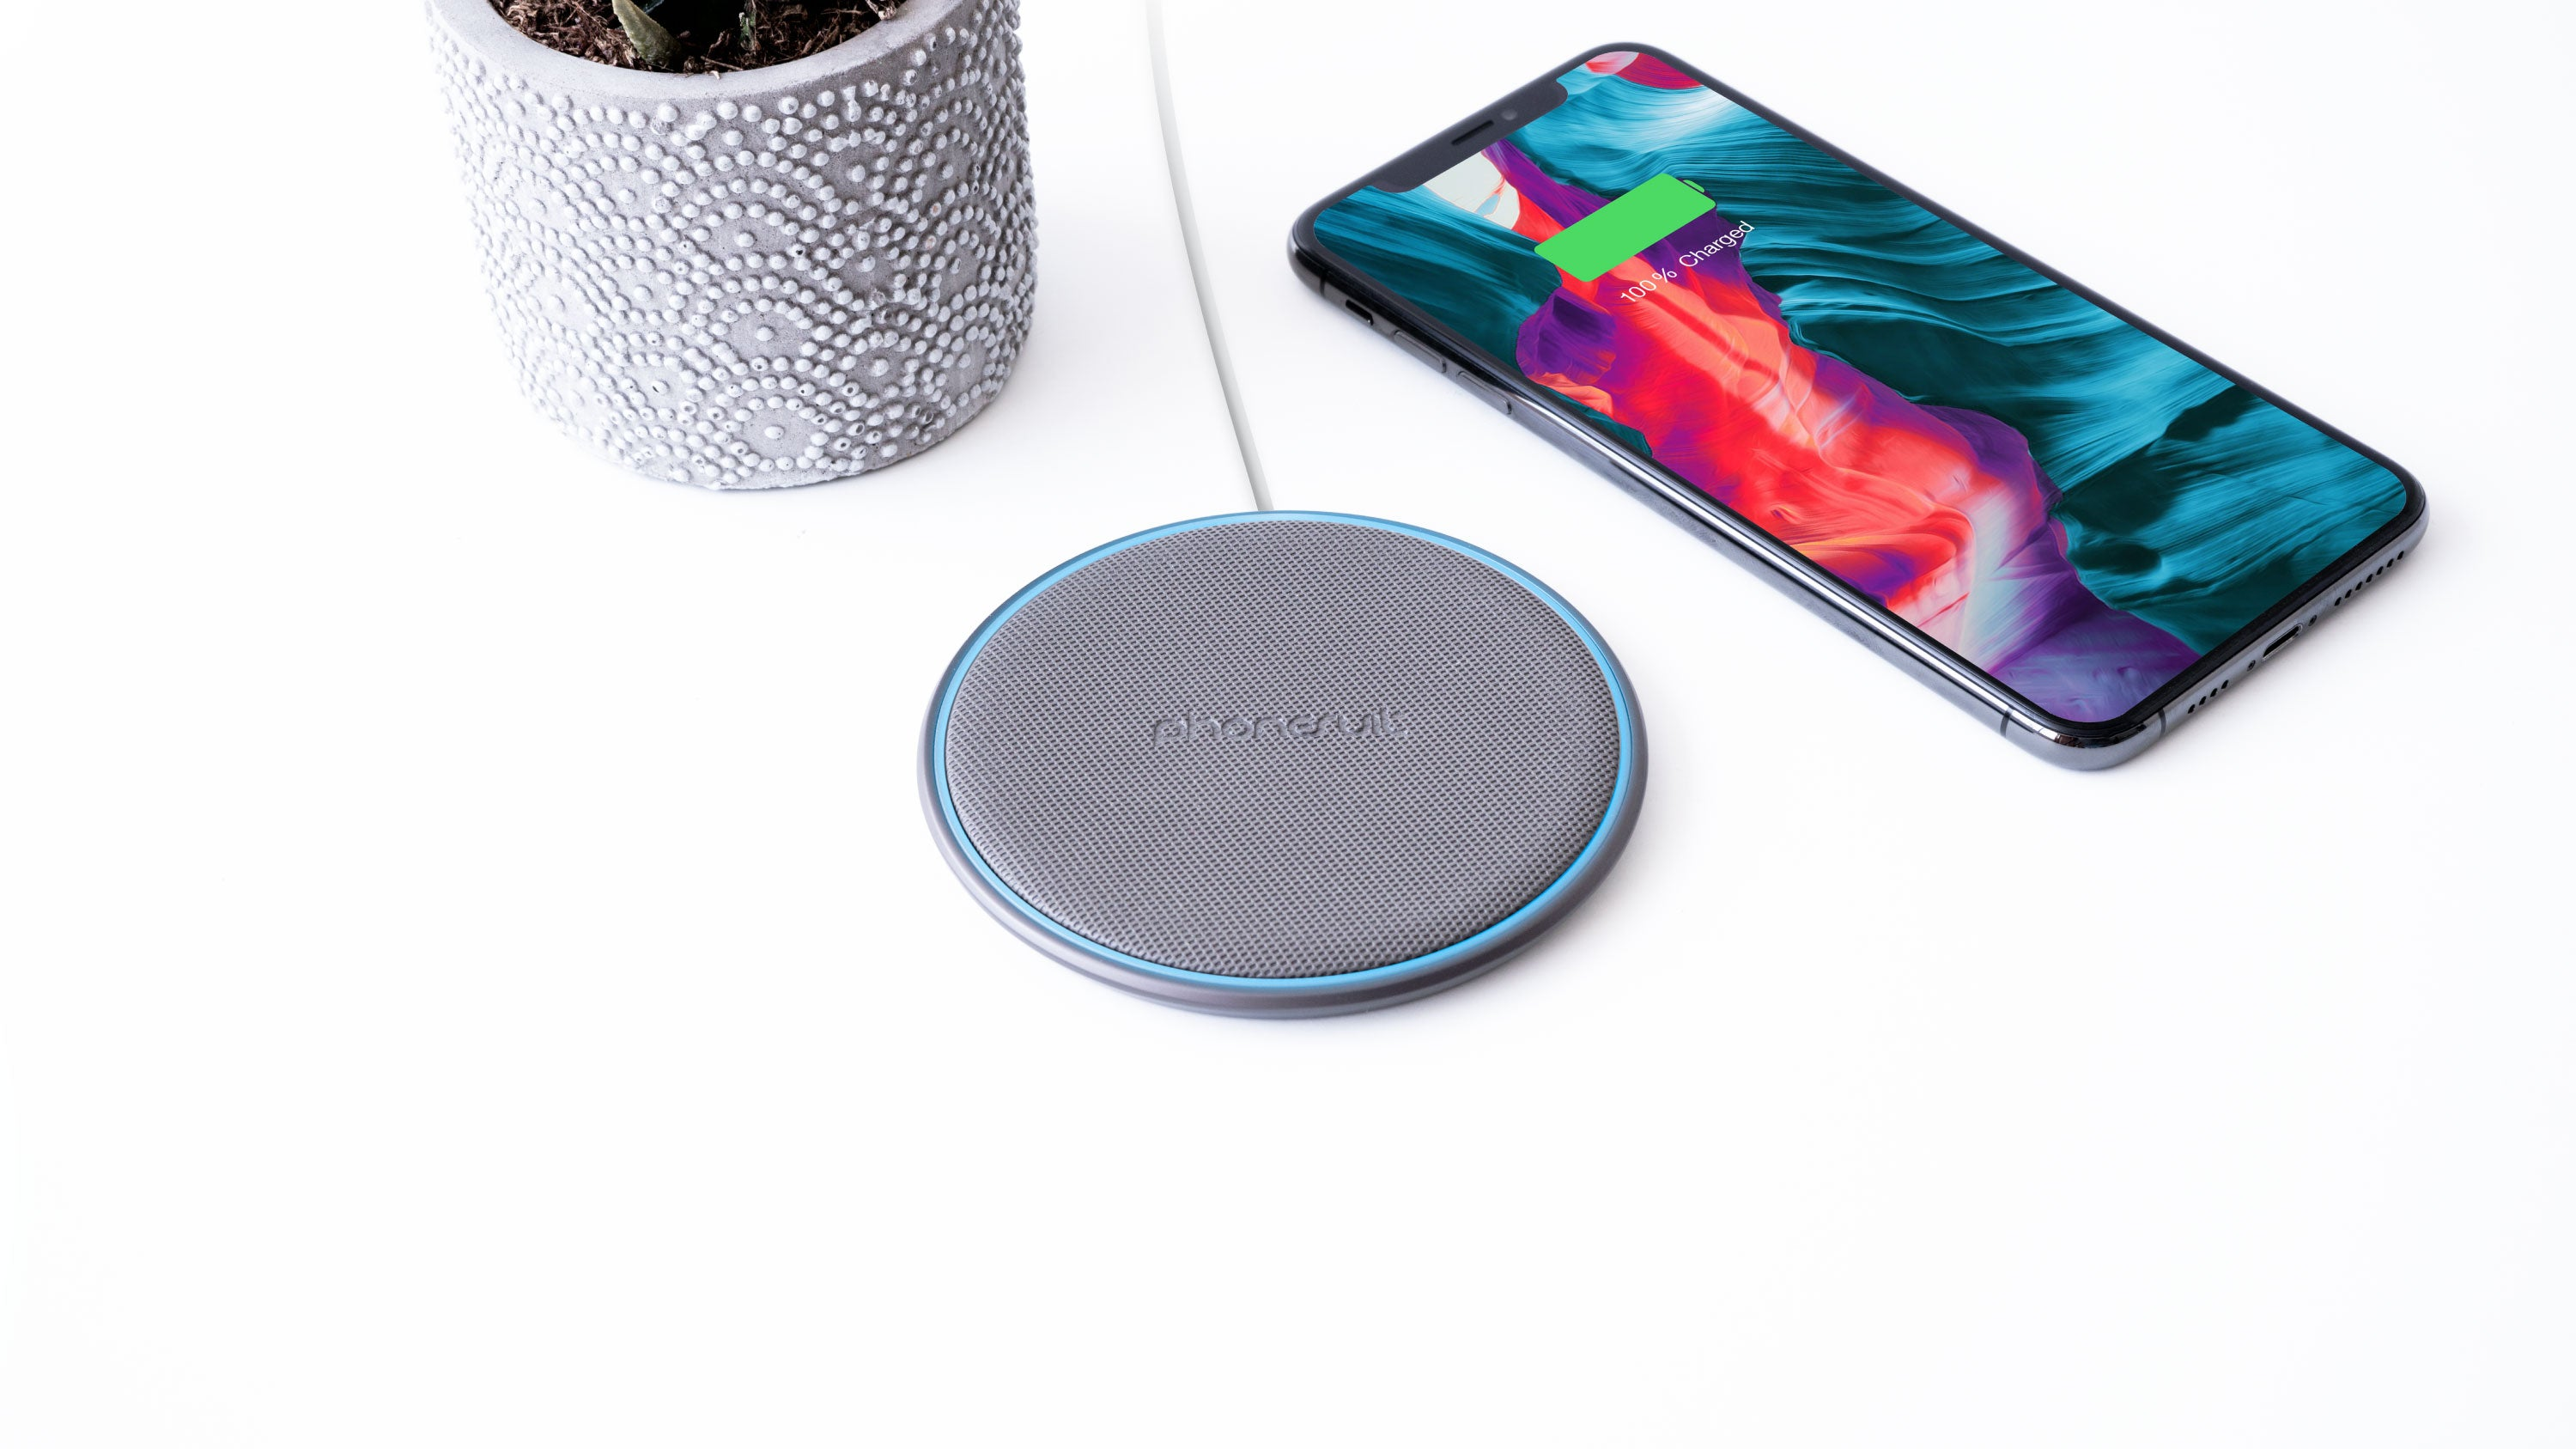 Energy Core Wireless Charge Pad PRO for iPhone, Samsung, & More